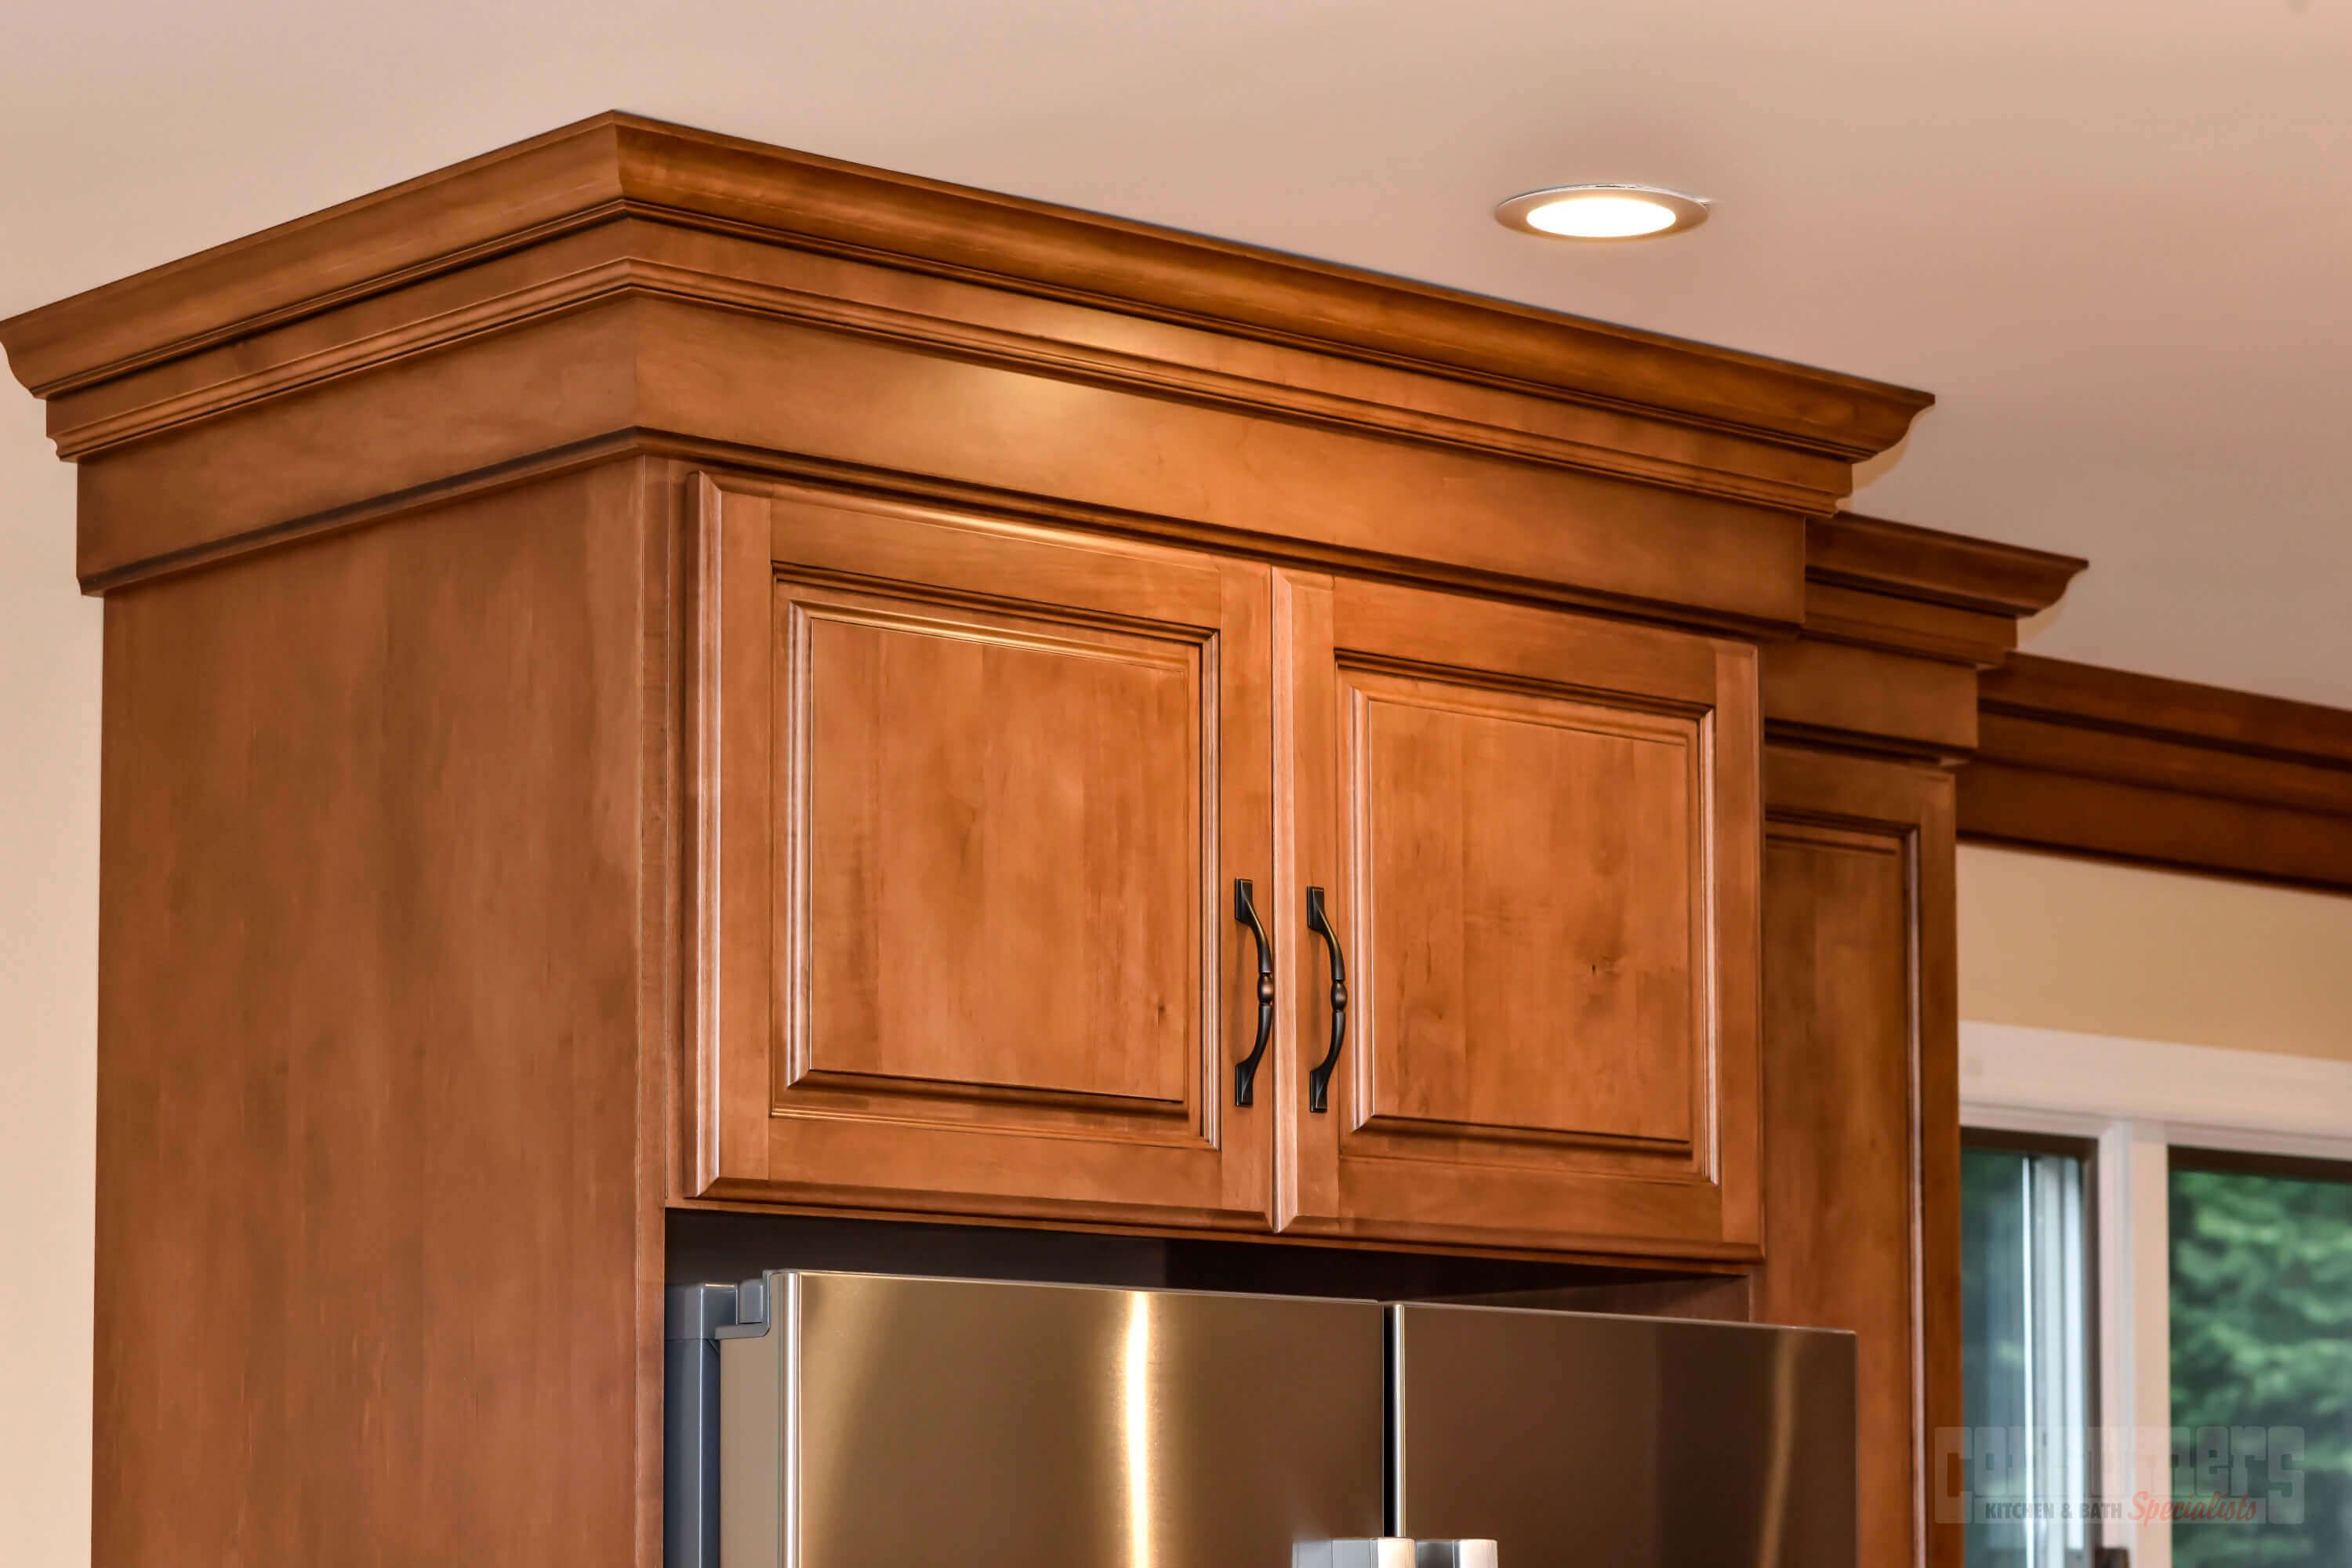 Pin By Consumers Kitchens Baths On East Northport Expanse  E10fd5869403a0d5f84536aff13d2eea 414894184413889711